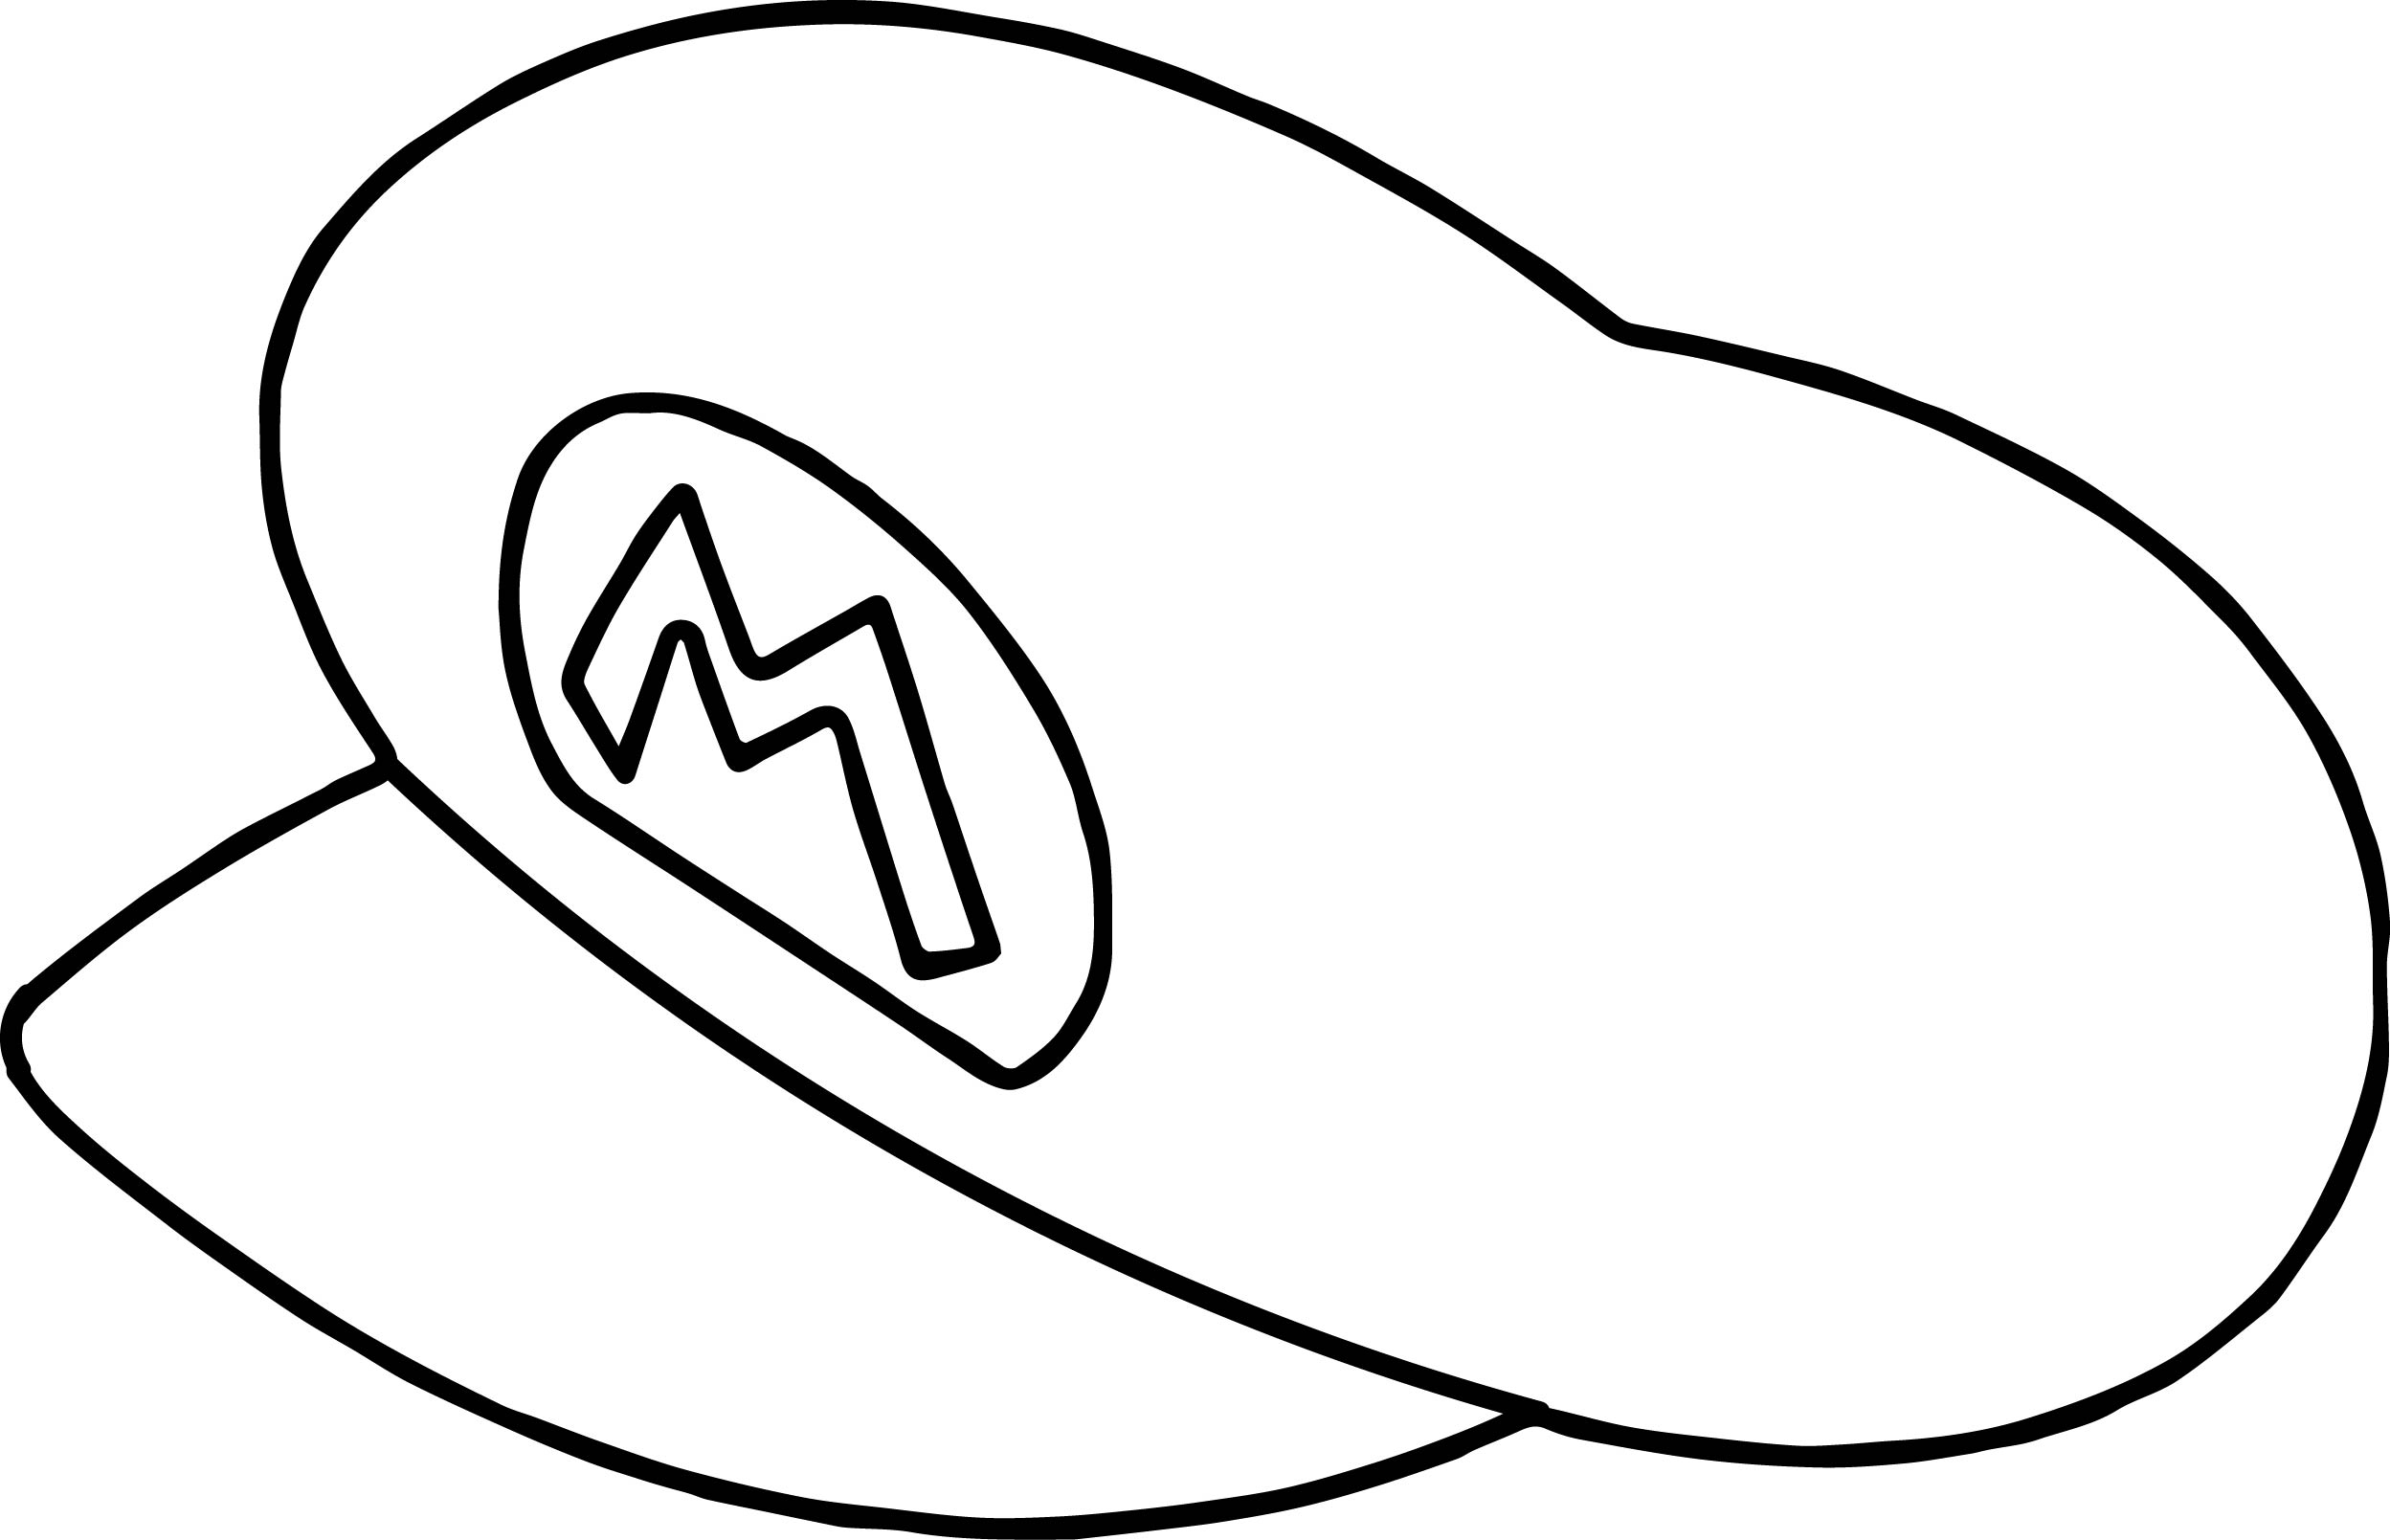 Super Mario Hat Outline Coloring Page